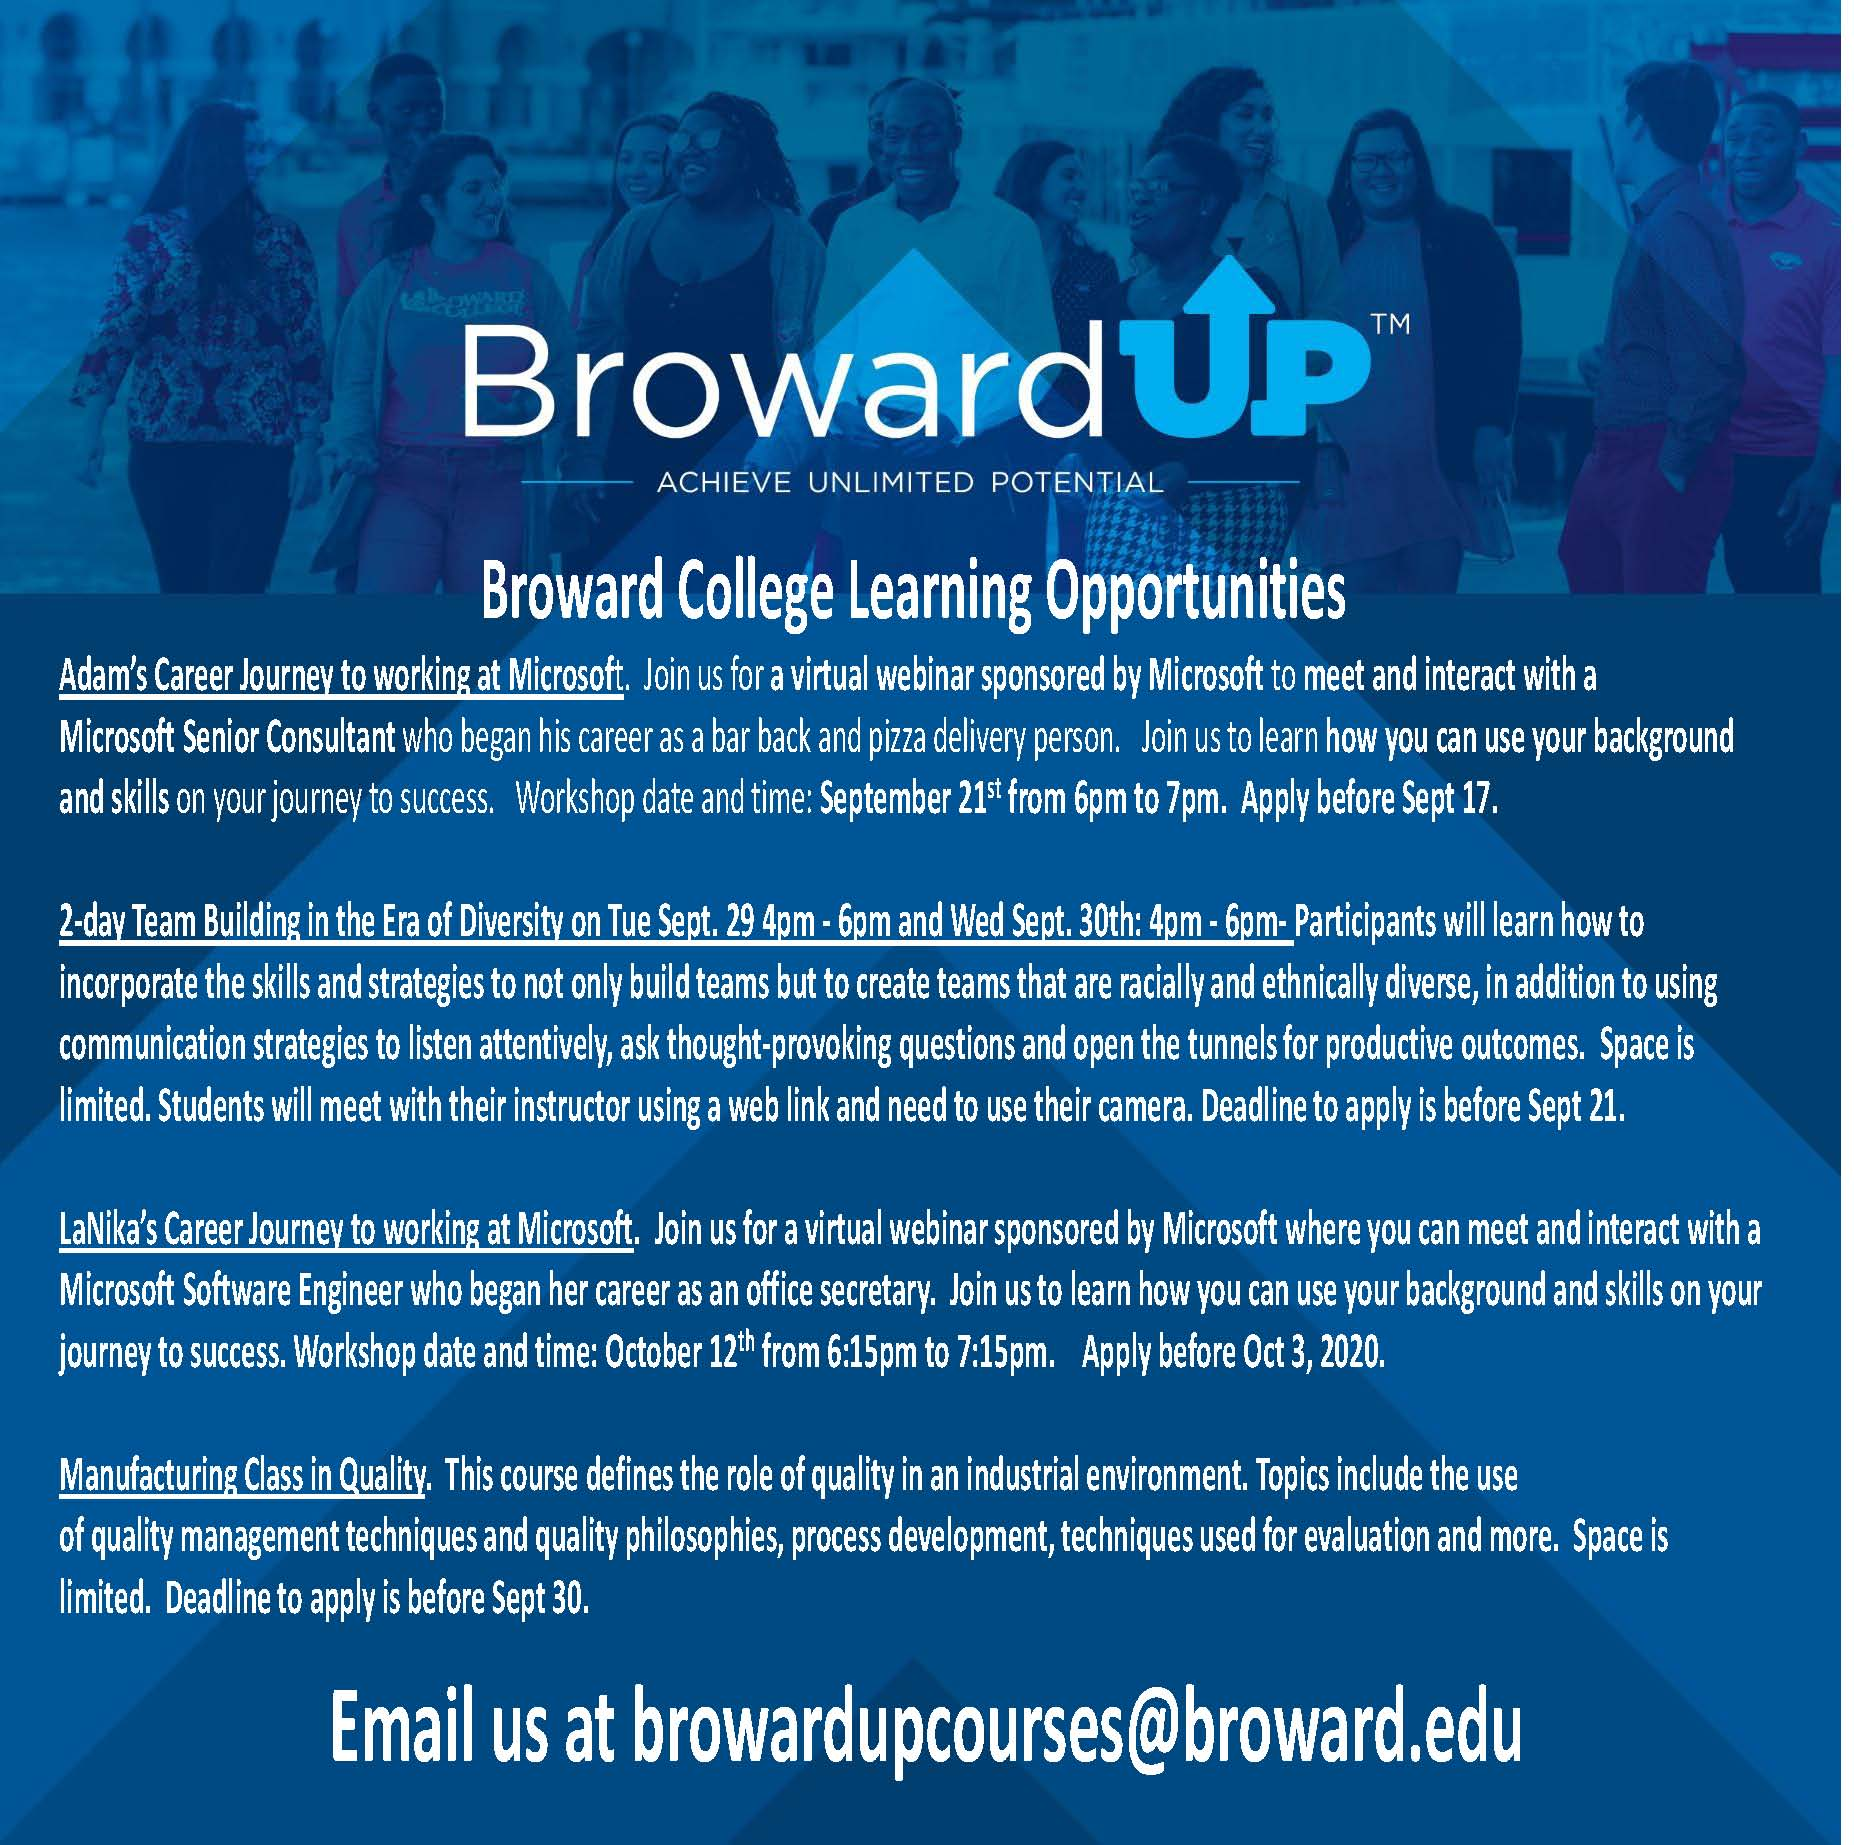 Broward College Online Programs - Fall 2020